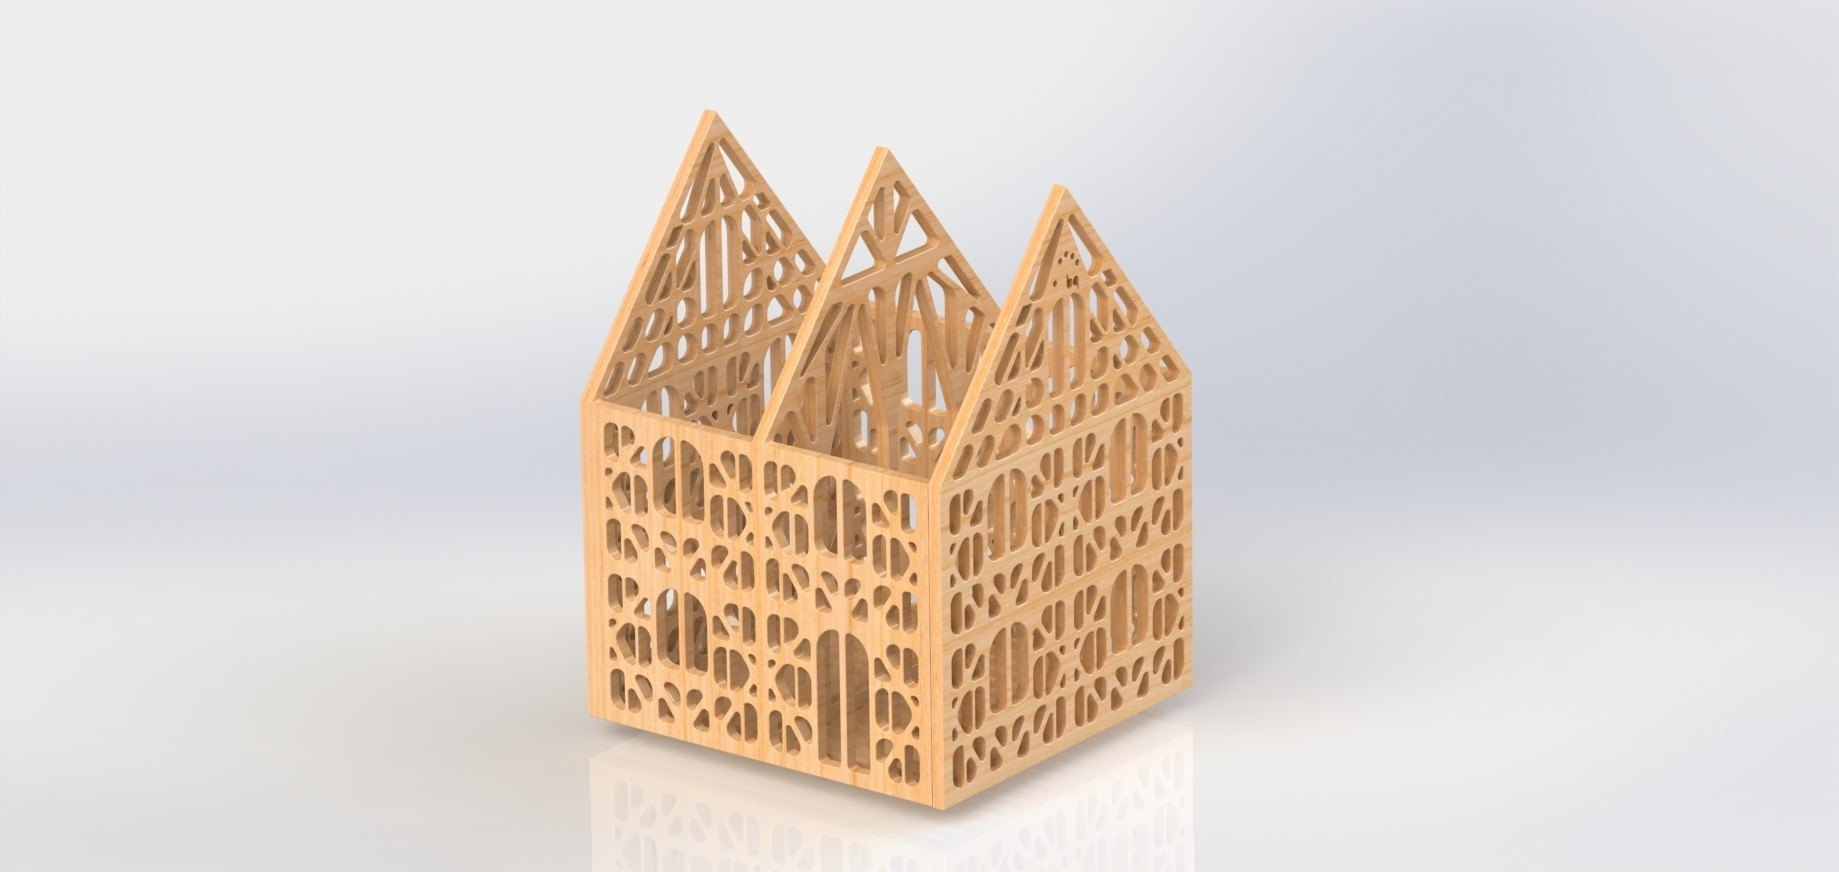 Maison bq.JPG Download free STL file Box Ossature House Alsatian • 3D printer object, Xertos-3d